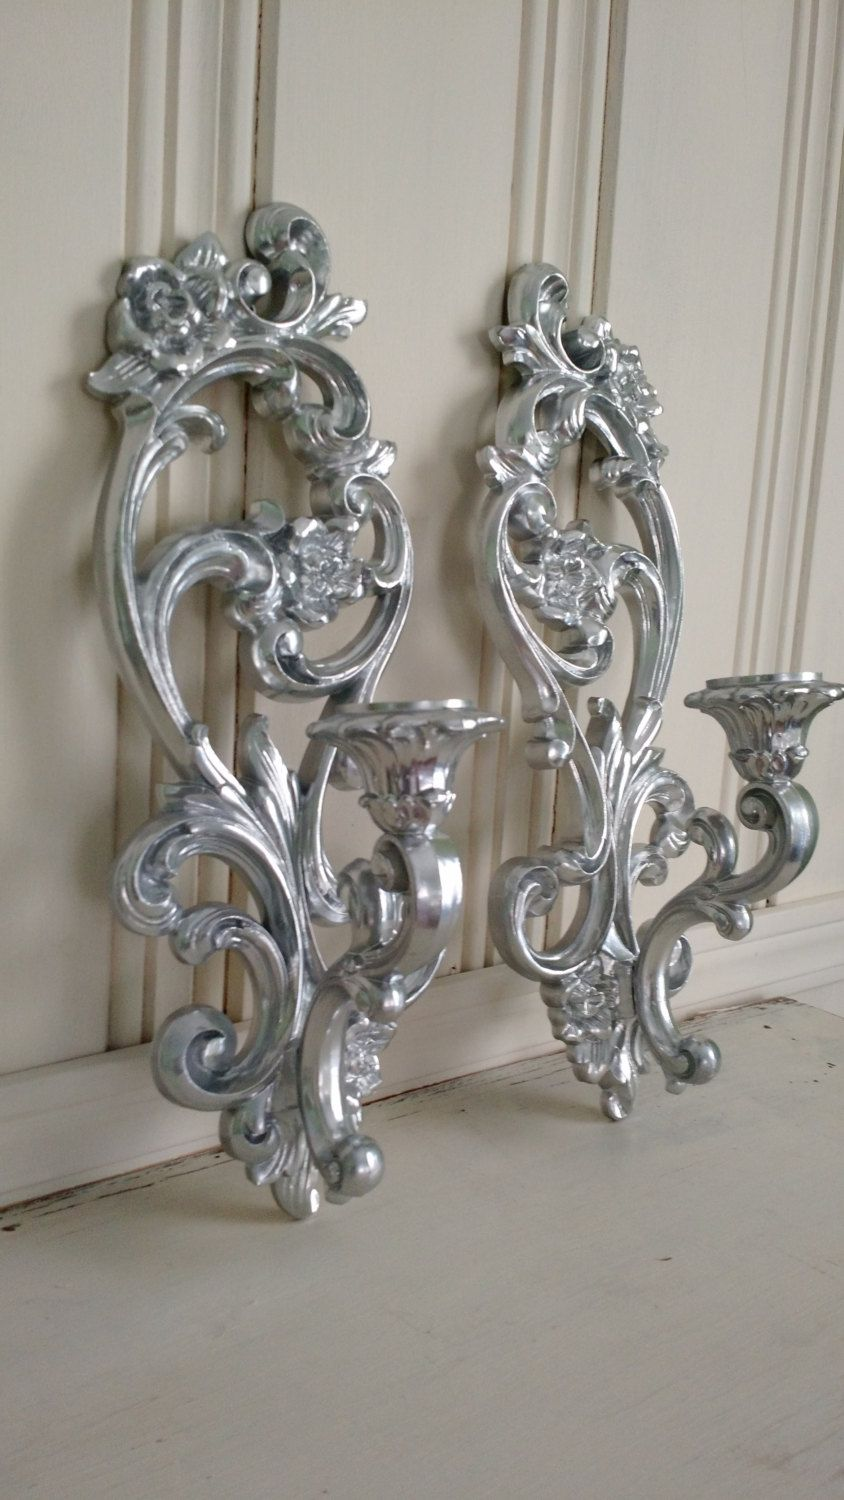 Silver Painted Vintage Candle/Wall Sconces by ... on Silver Wall Sconces For Candles id=75954